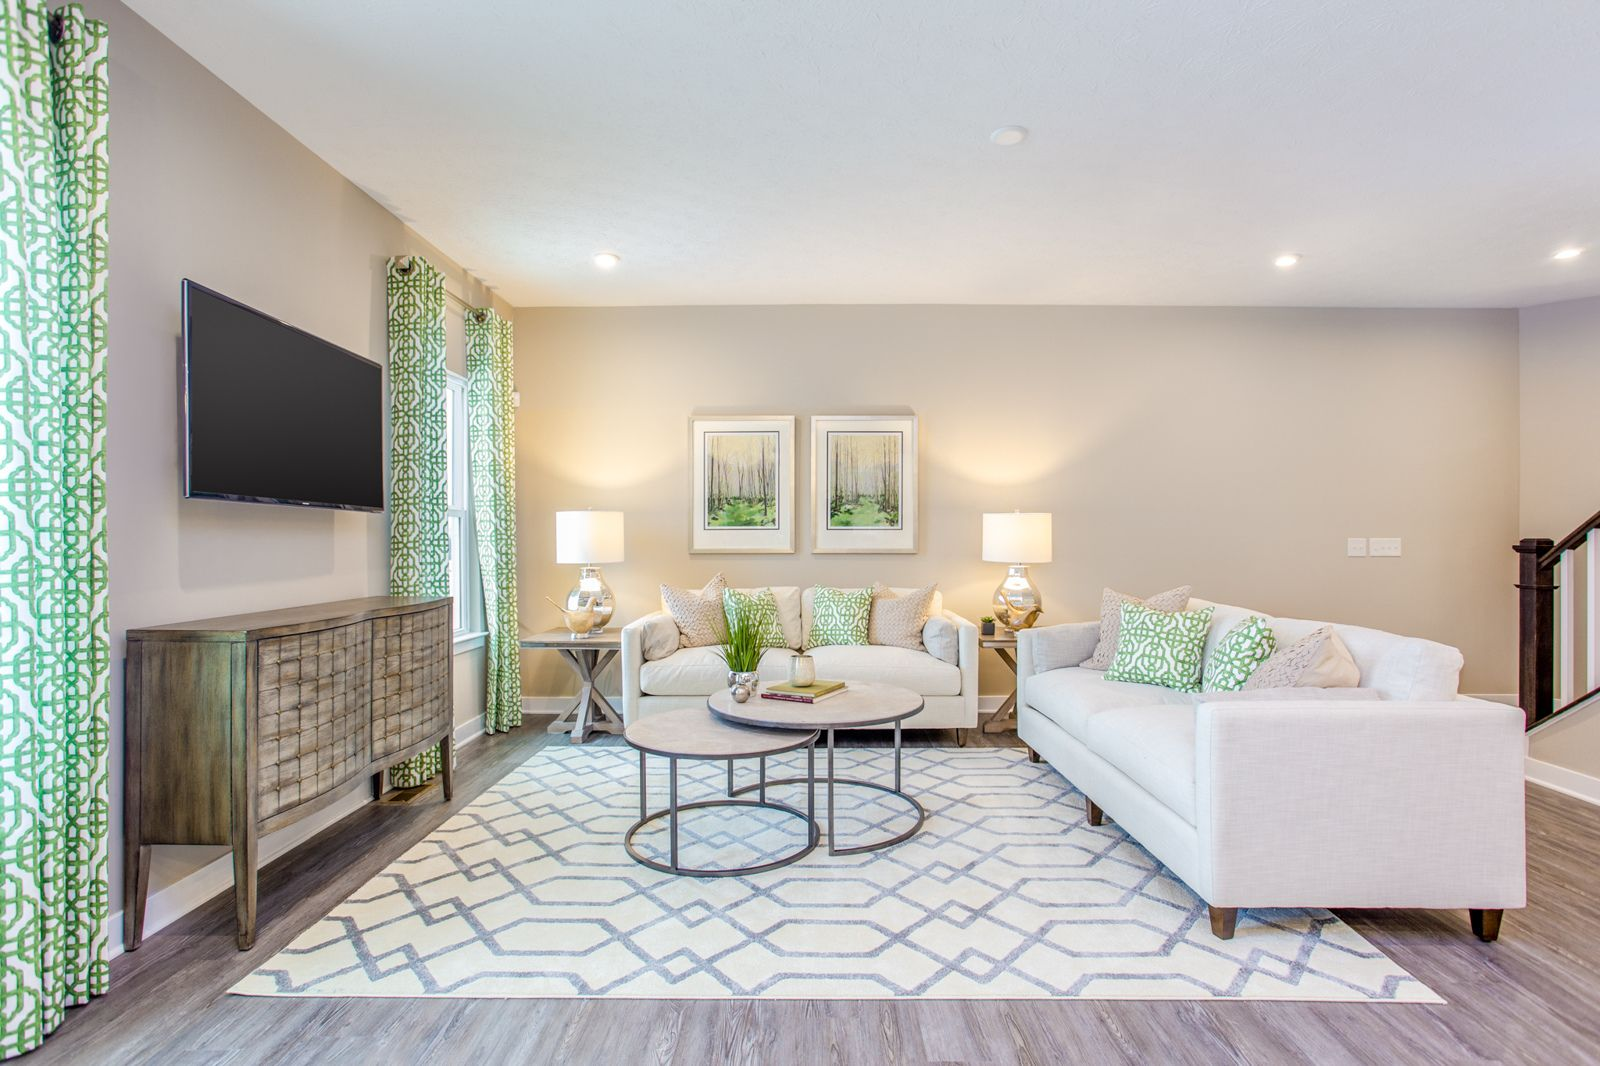 Living Area featured in the Rosecliff By HeartlandHomes in Morgantown, WV